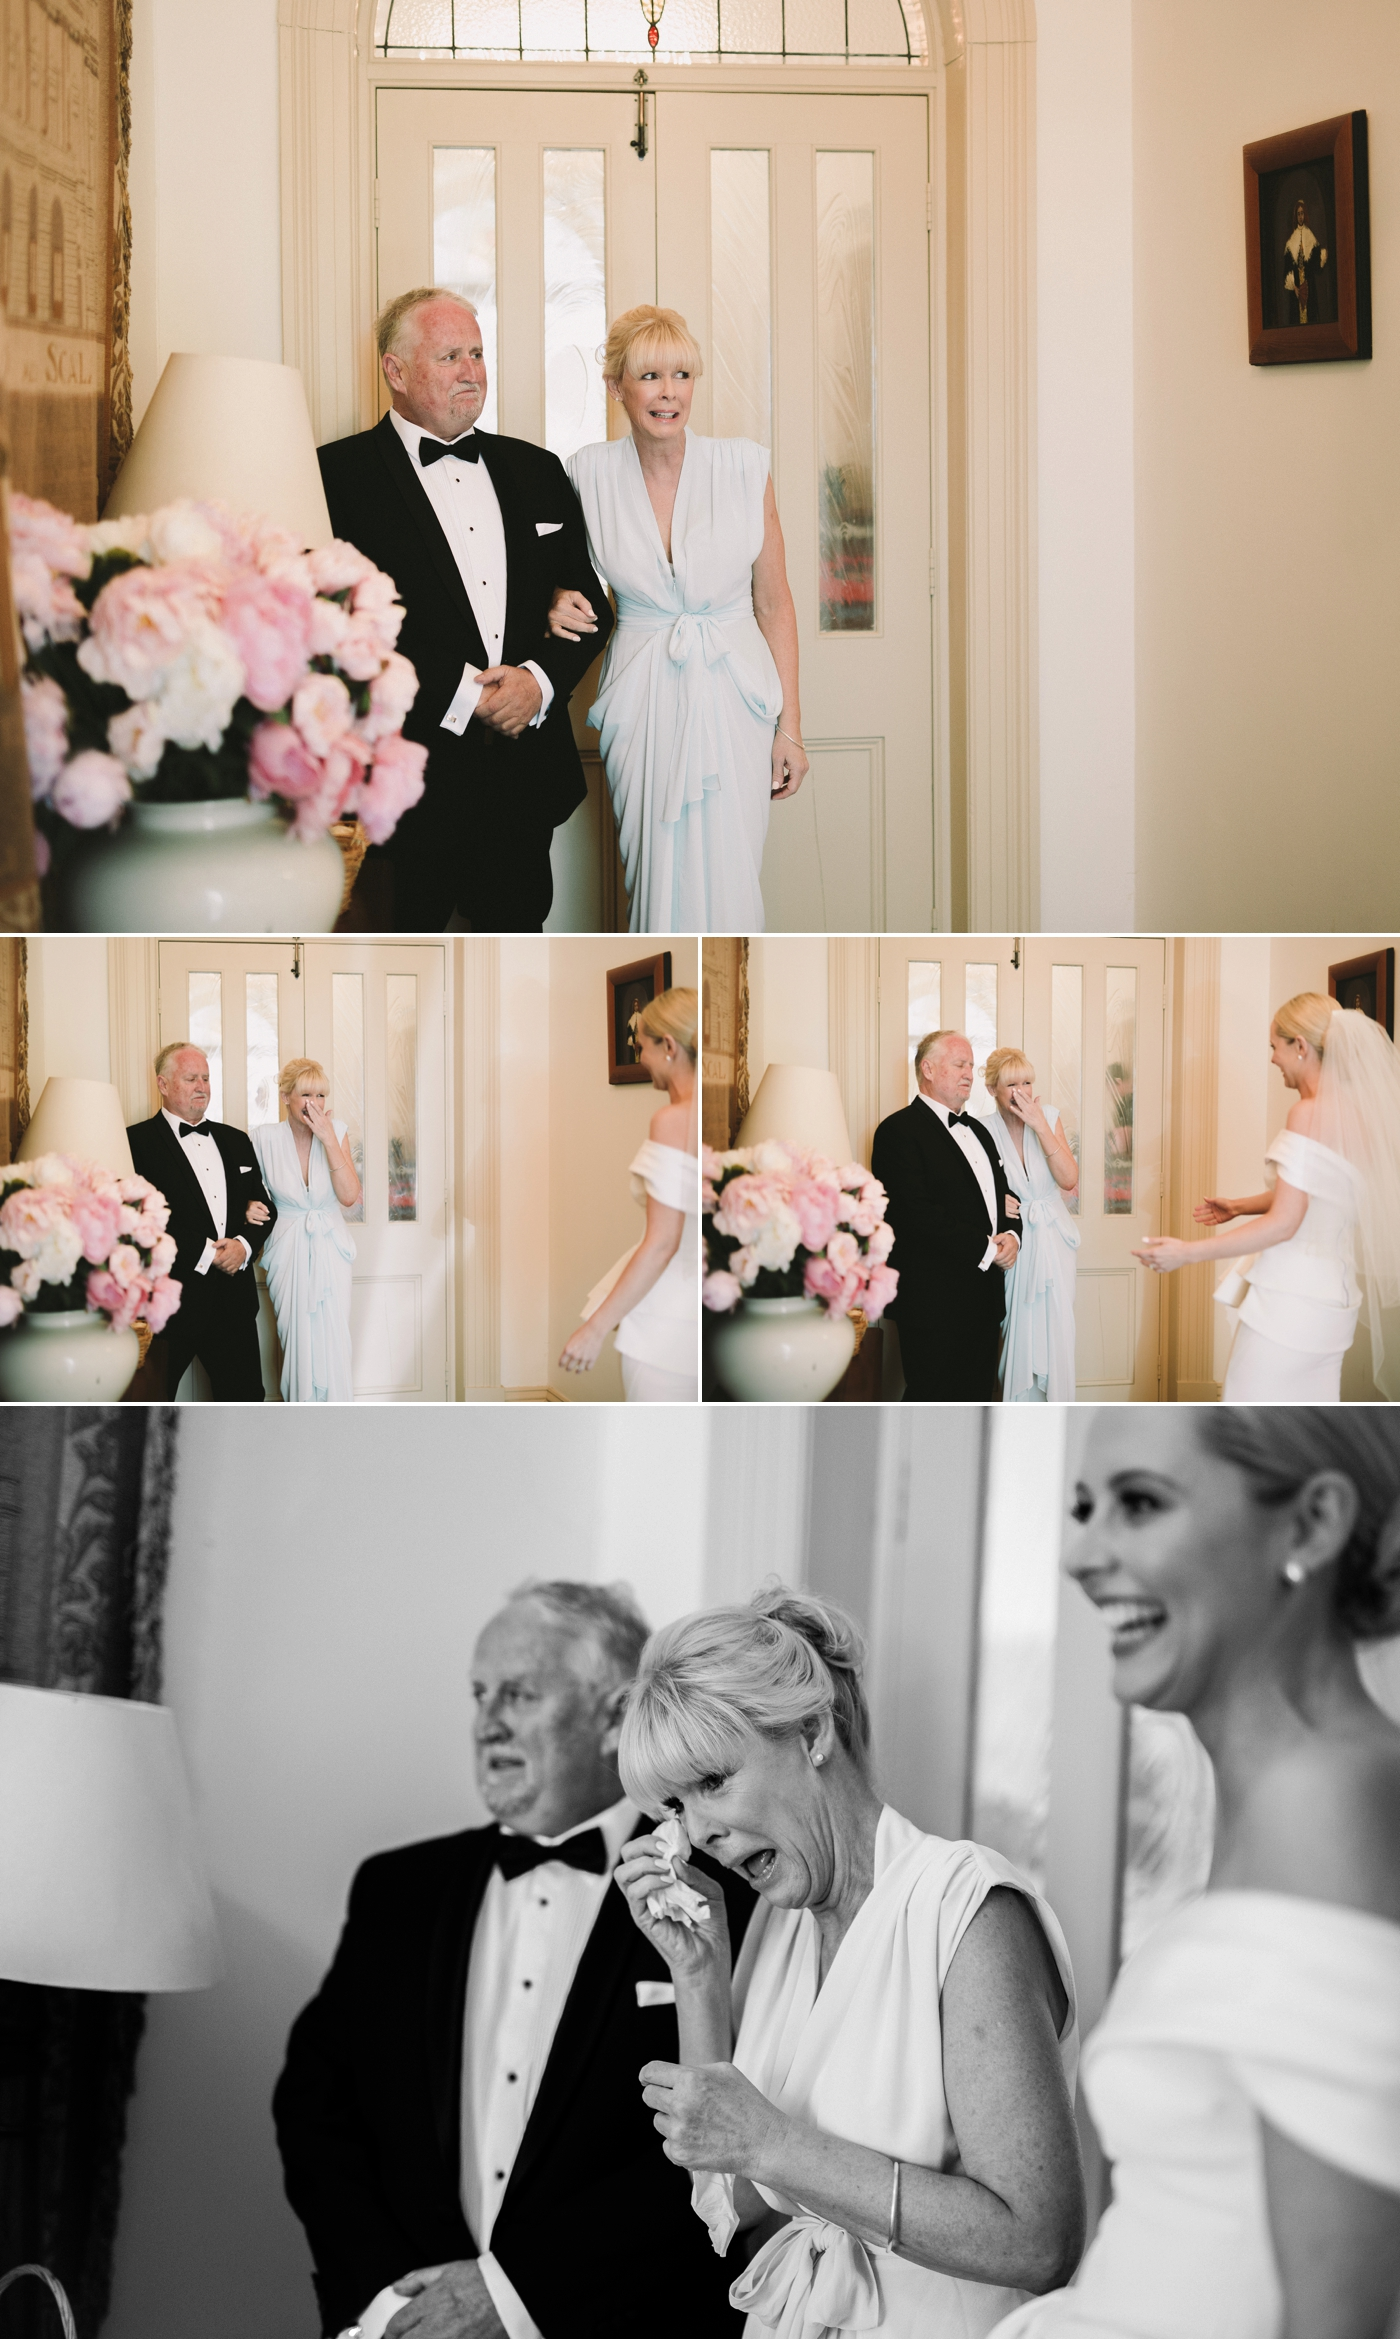 Bec & Brad - Waverley Estate Wedding - Natural Wedding Photographer in Adelaide - www.katherineschultzphotography.com 12